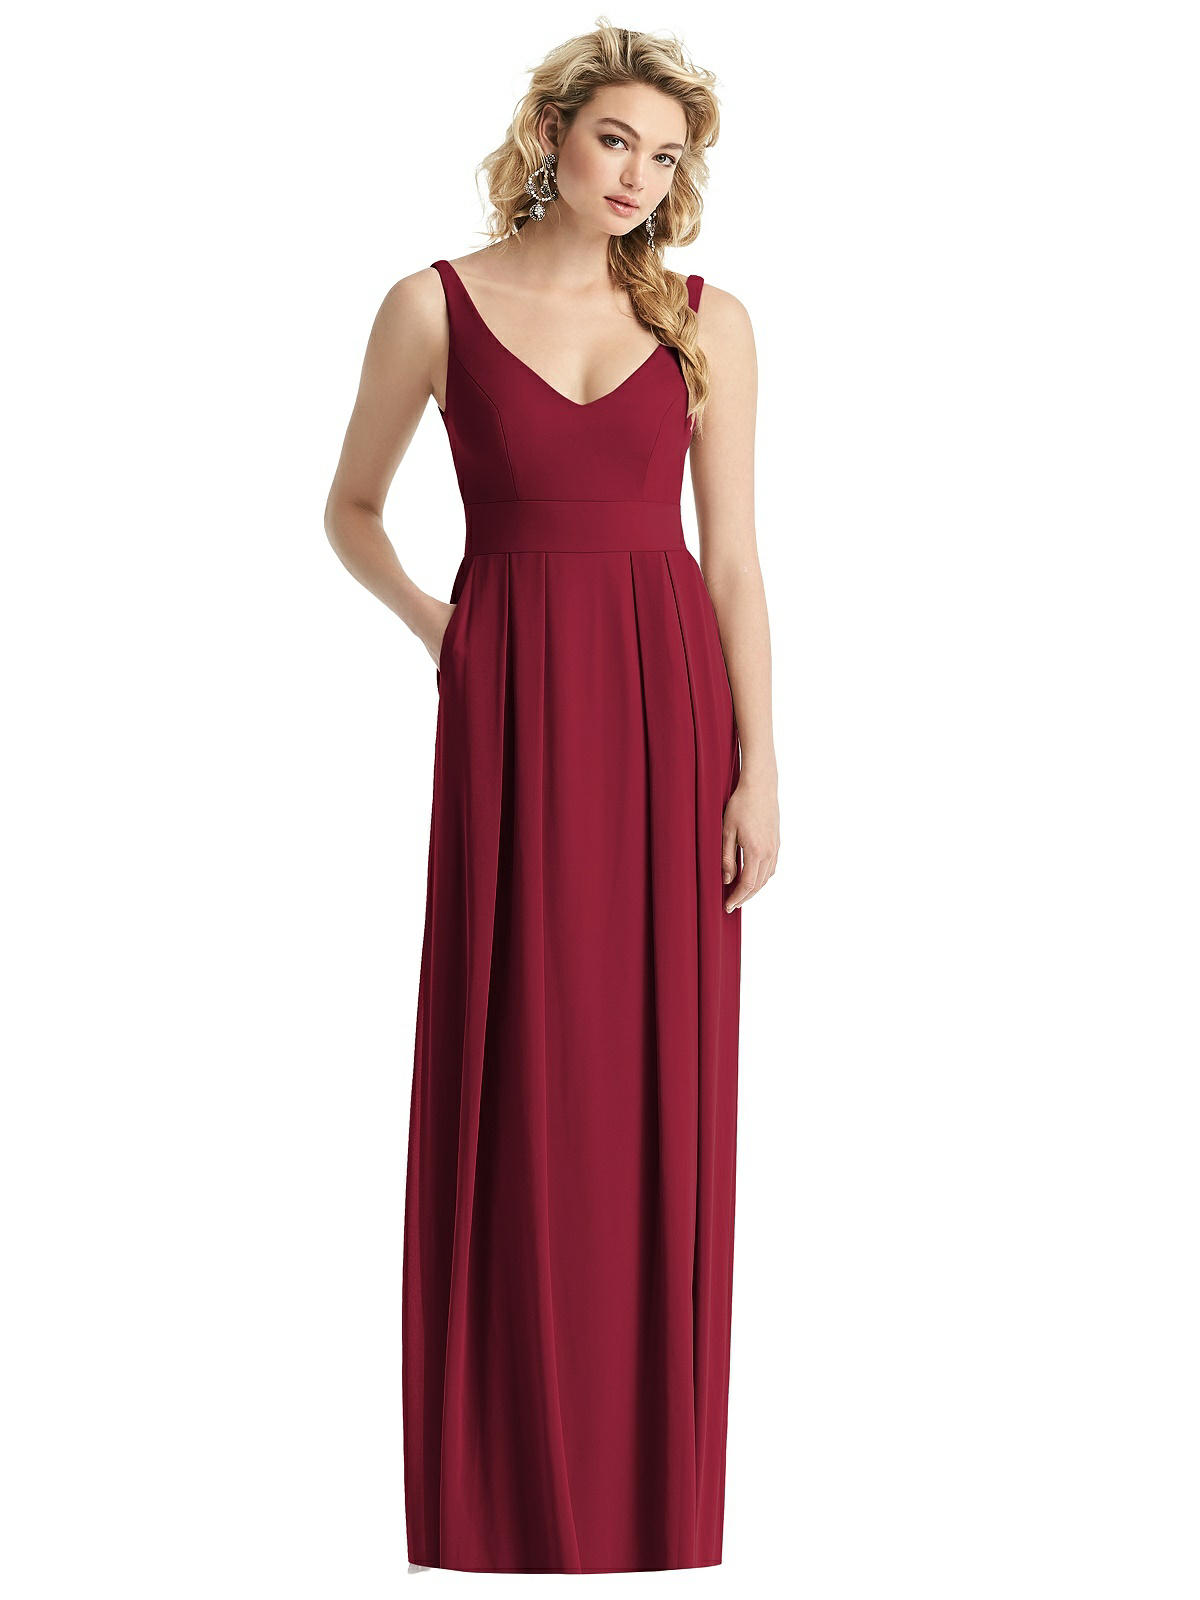 fall wedding bridesmaid dress burgundy